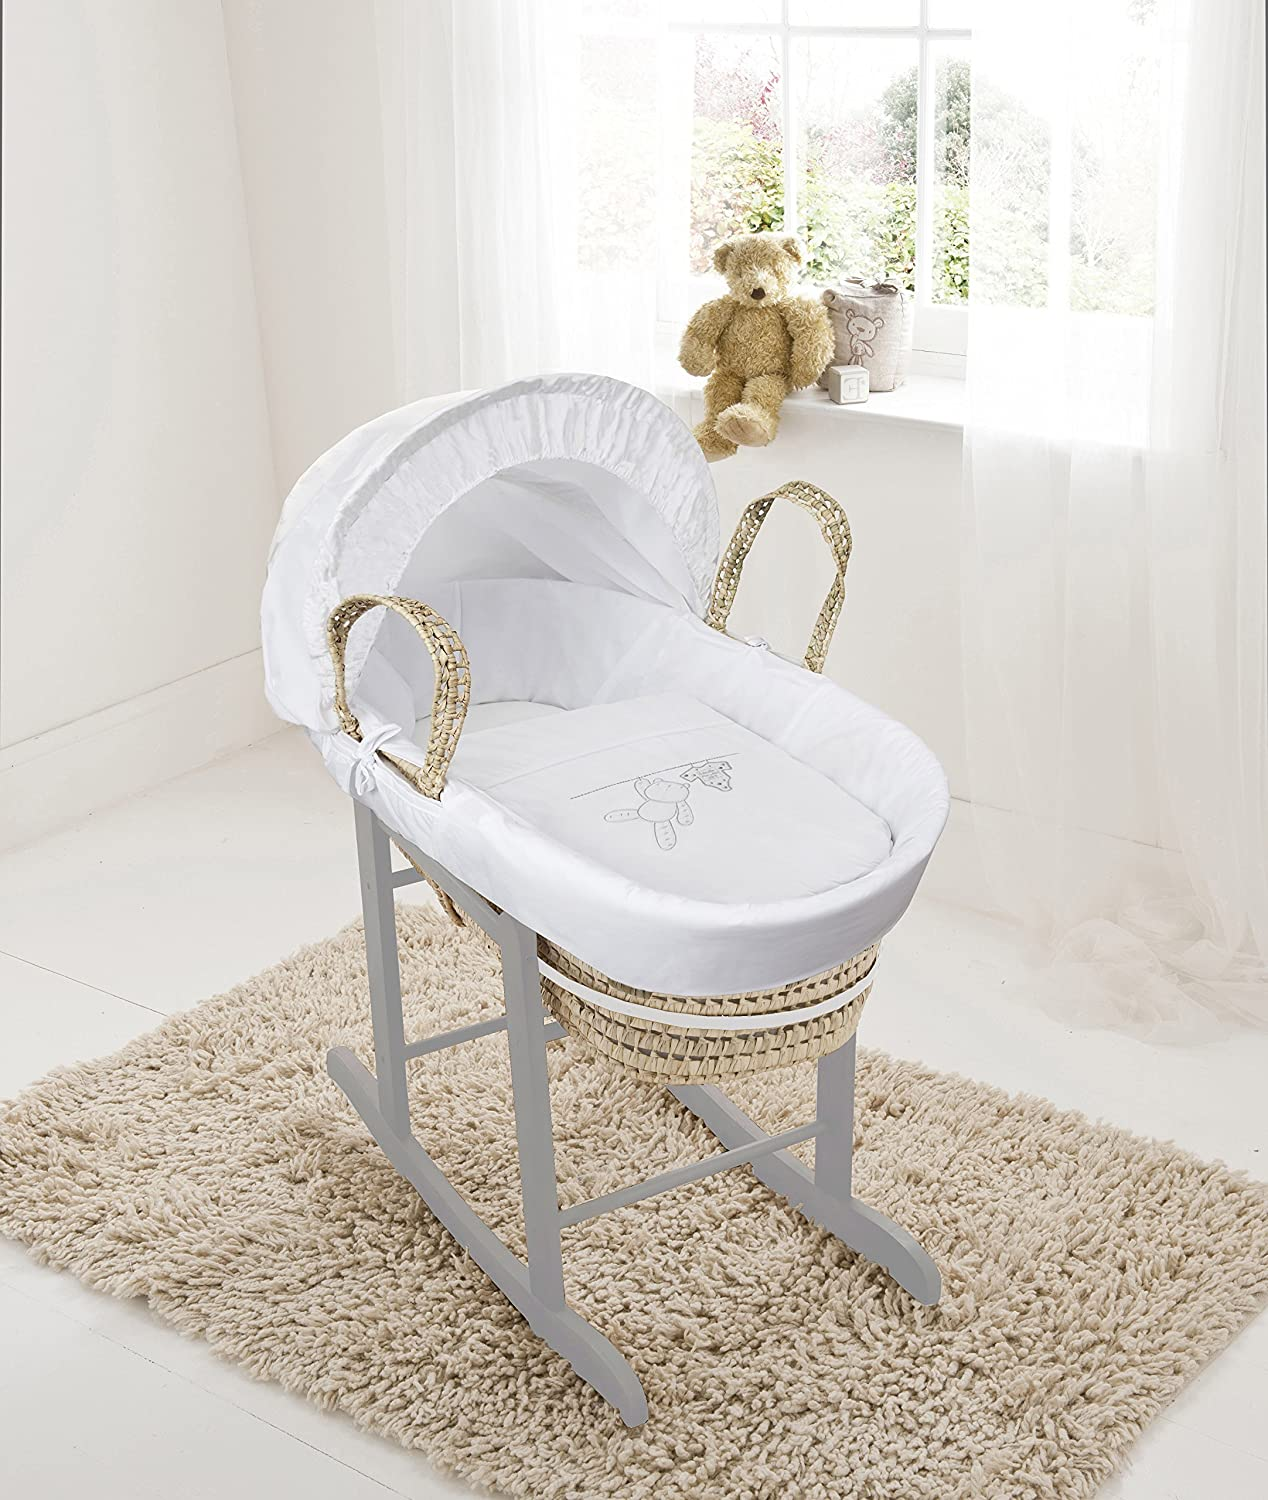 White Teddy Wash Day On Palm Moses Basket & Deluxe Dove Grey Rocking Stand Elegant Baby